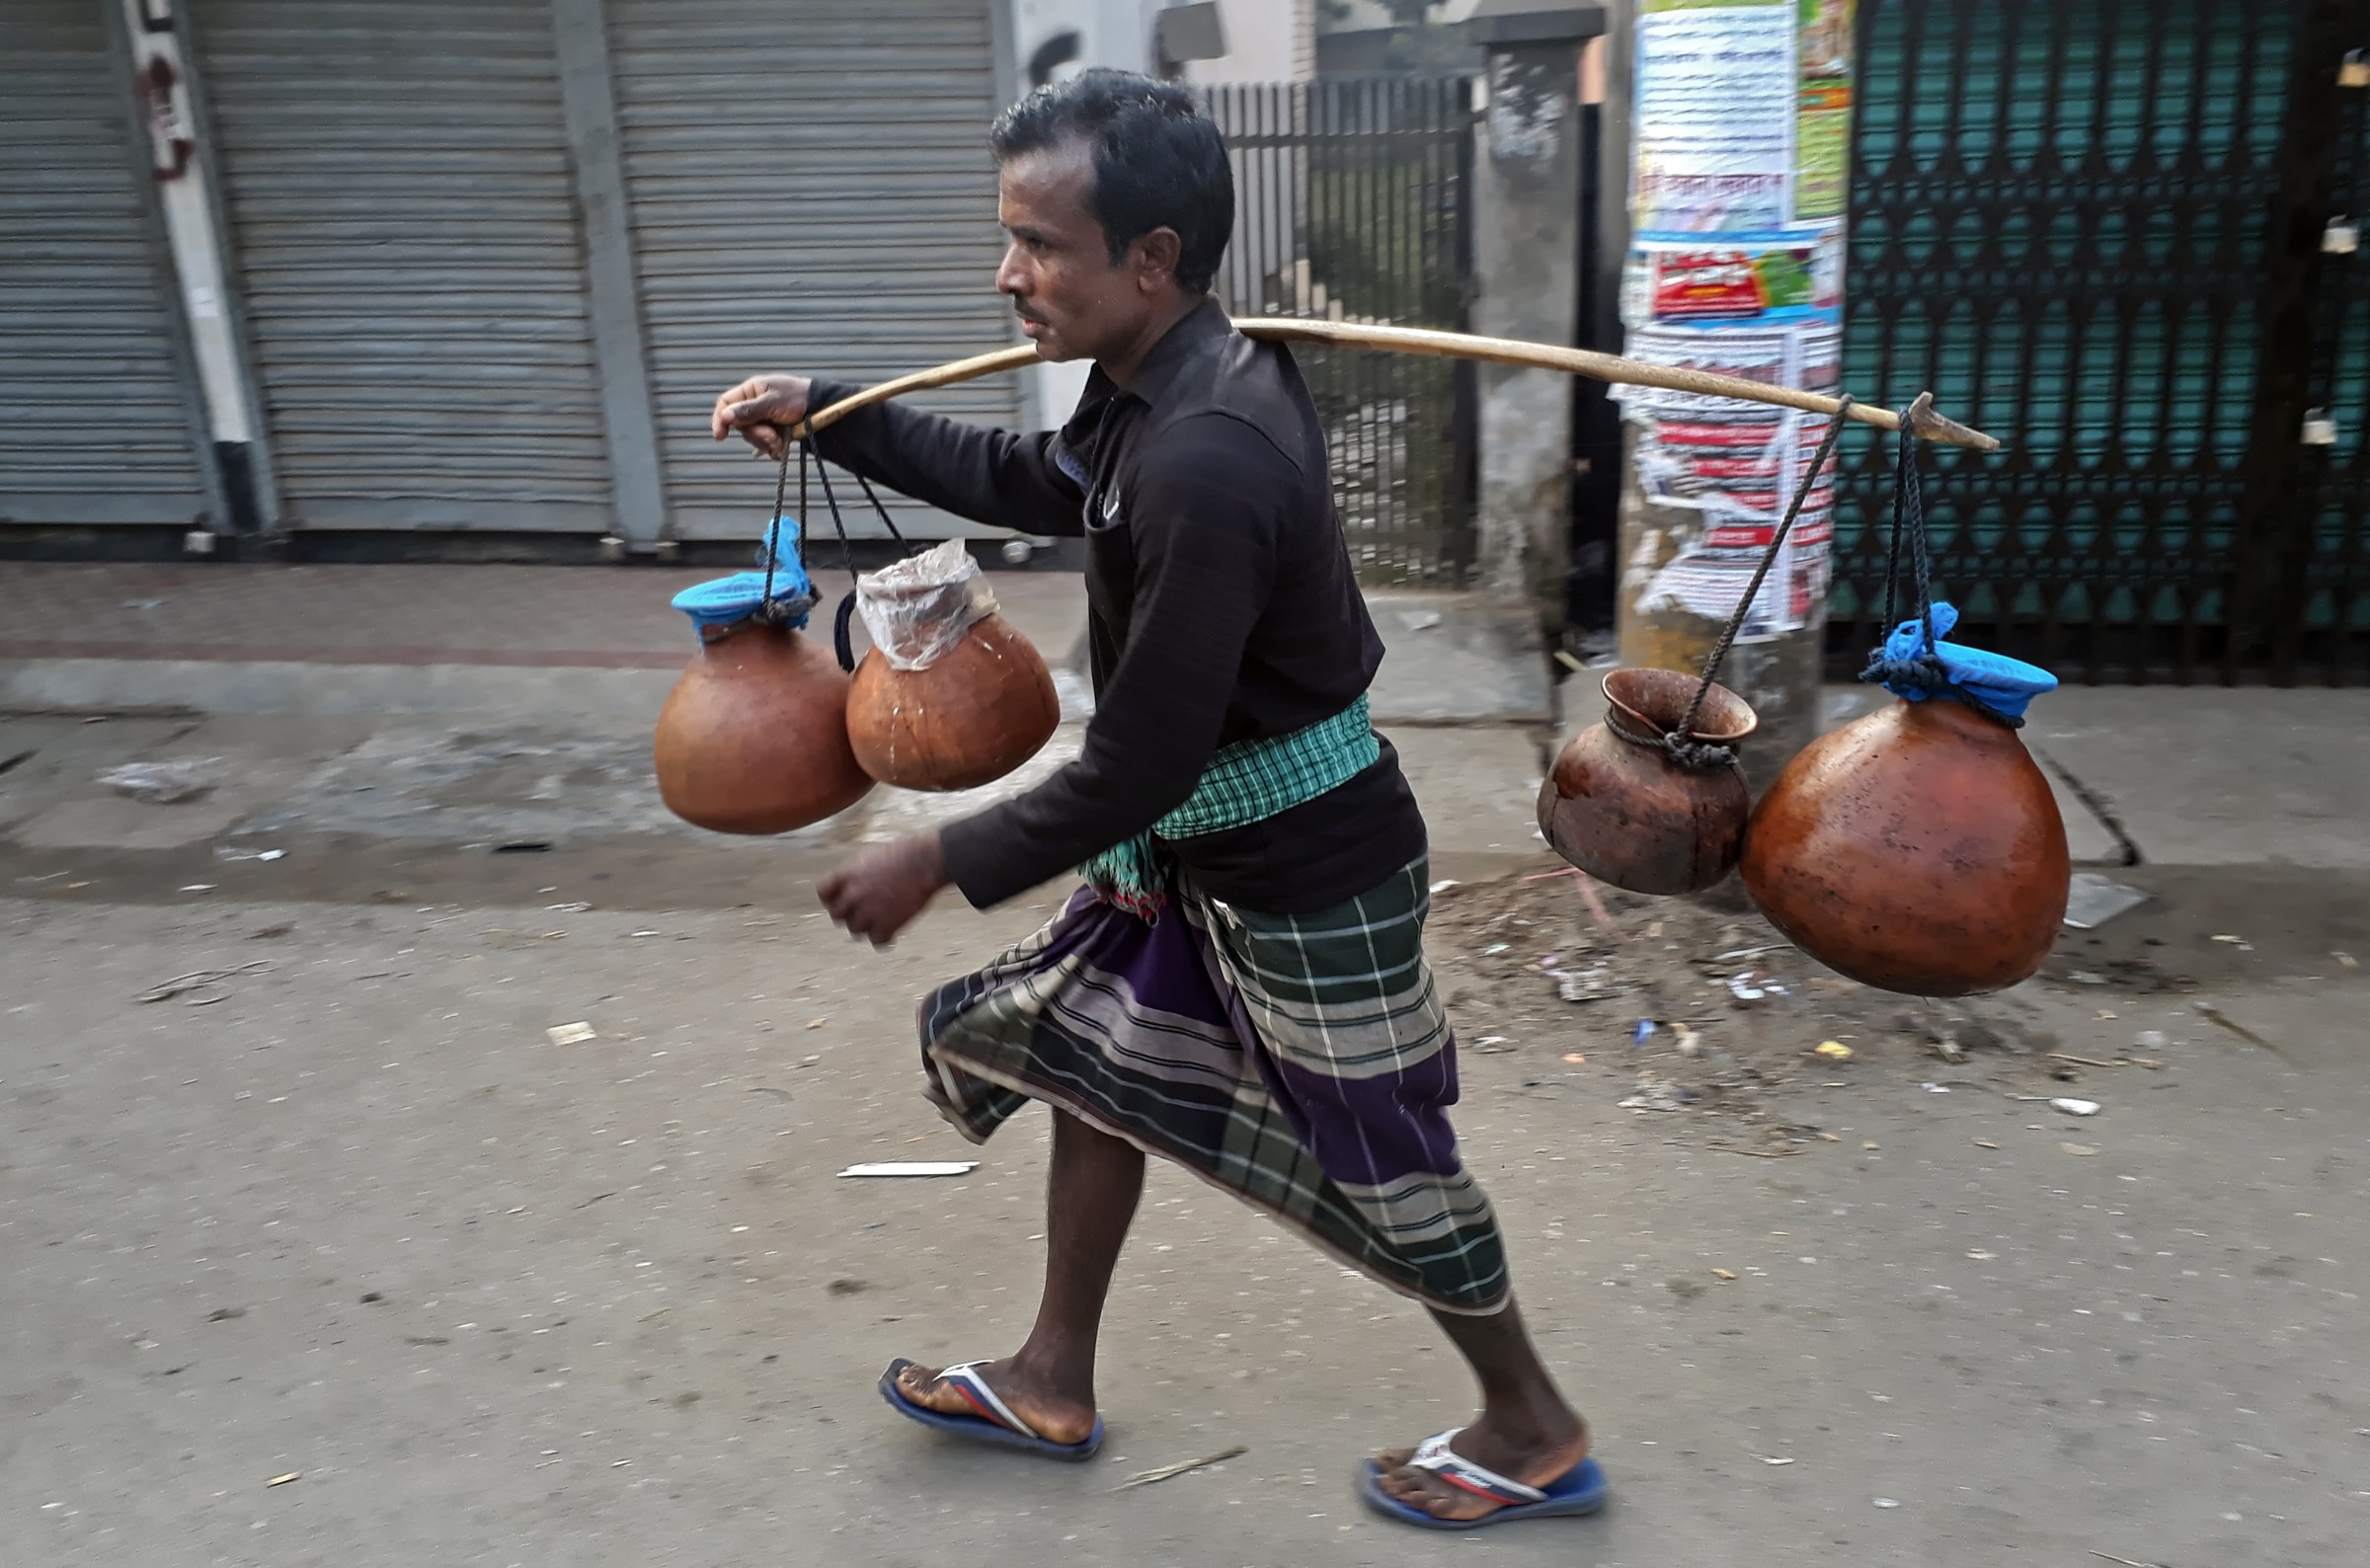 A gachhi walks the streets of Rangpur City carrying pots filled with sap collected from date palm trees, a delicacy in this part of Bangladesh. Photograph by A.M. Ahad